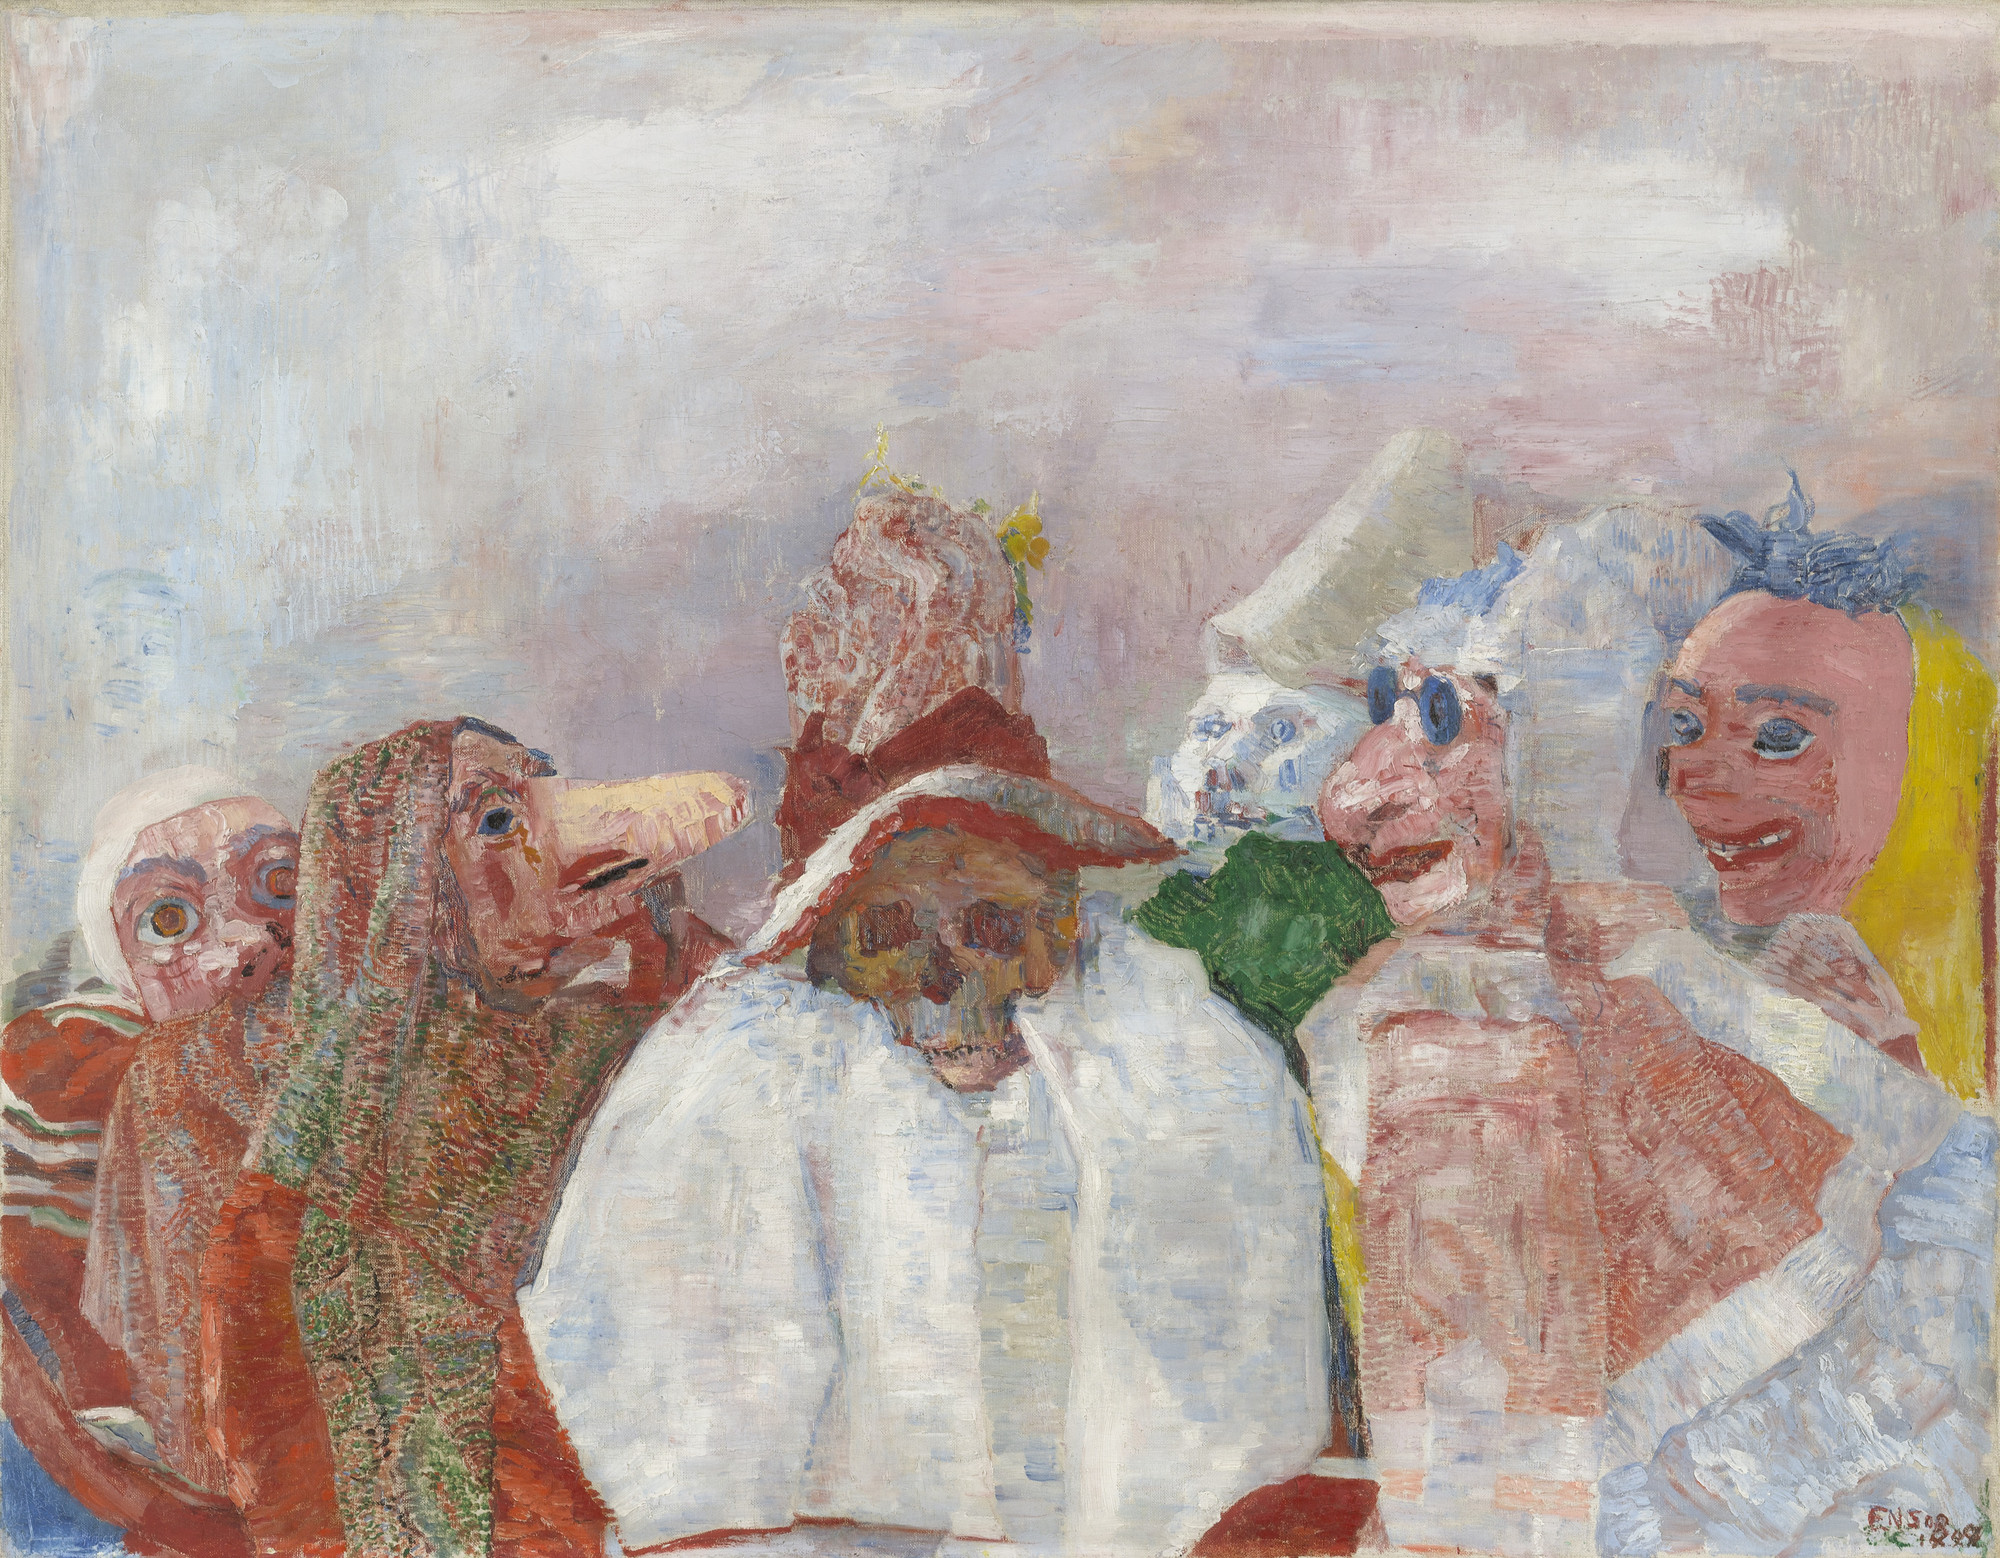 James Ensor. Masks Confronting Death. 1888